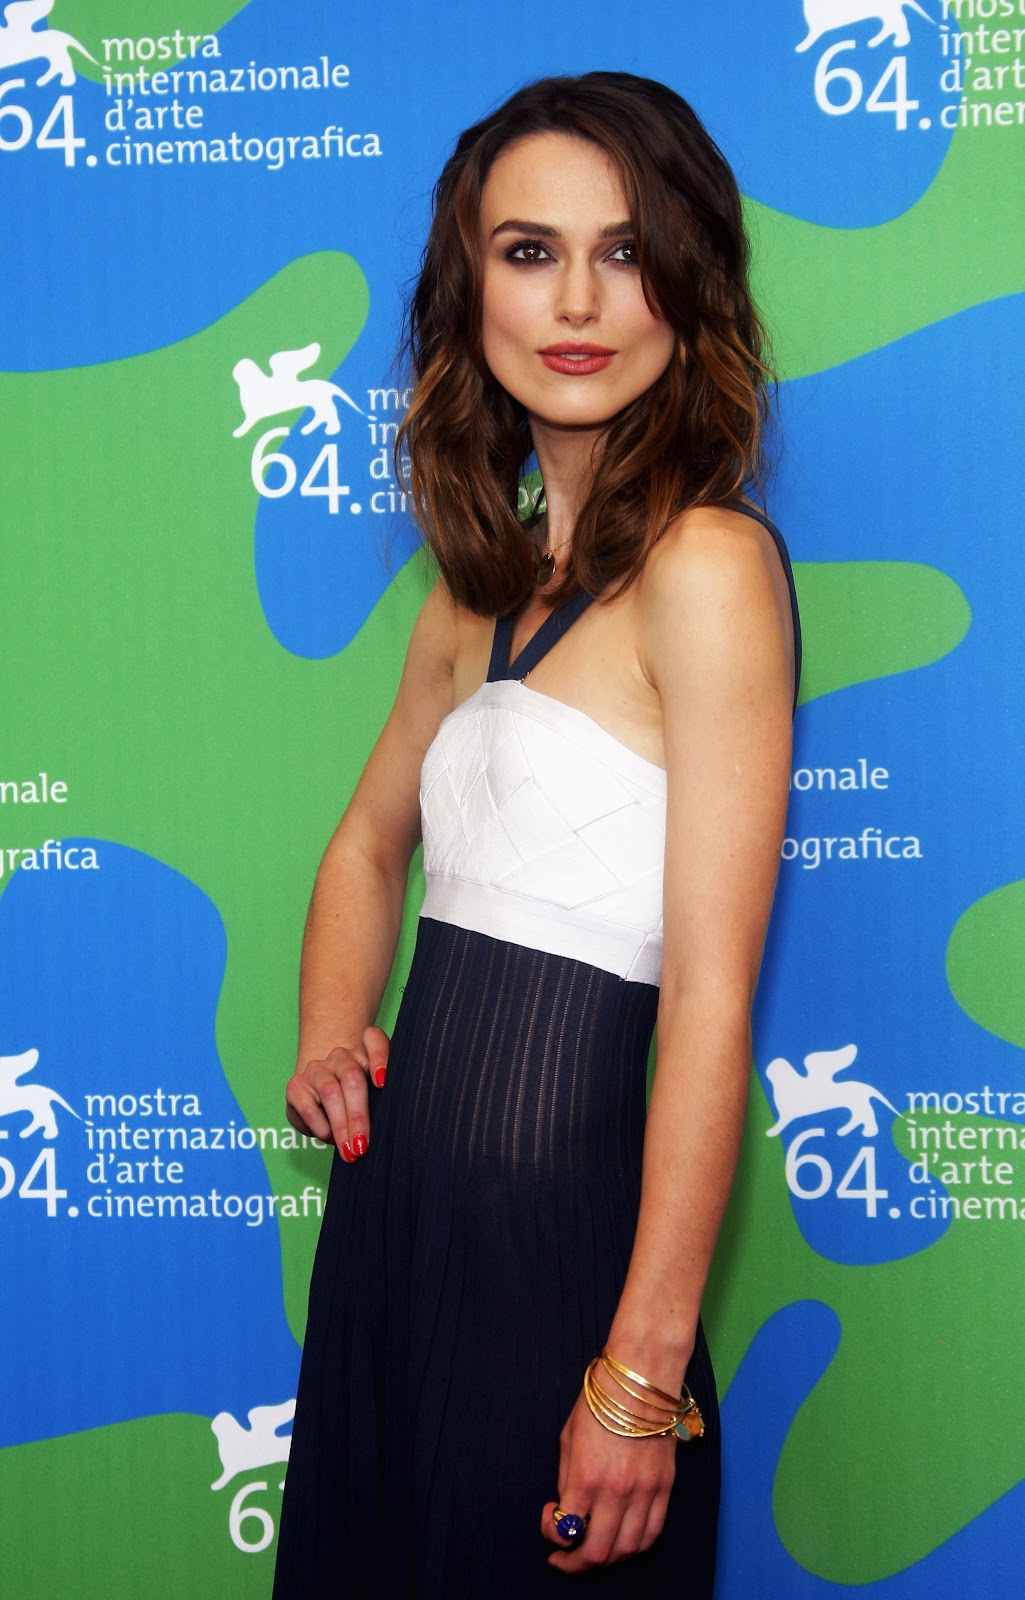 Keira Knightley special pictures | Film Actresses